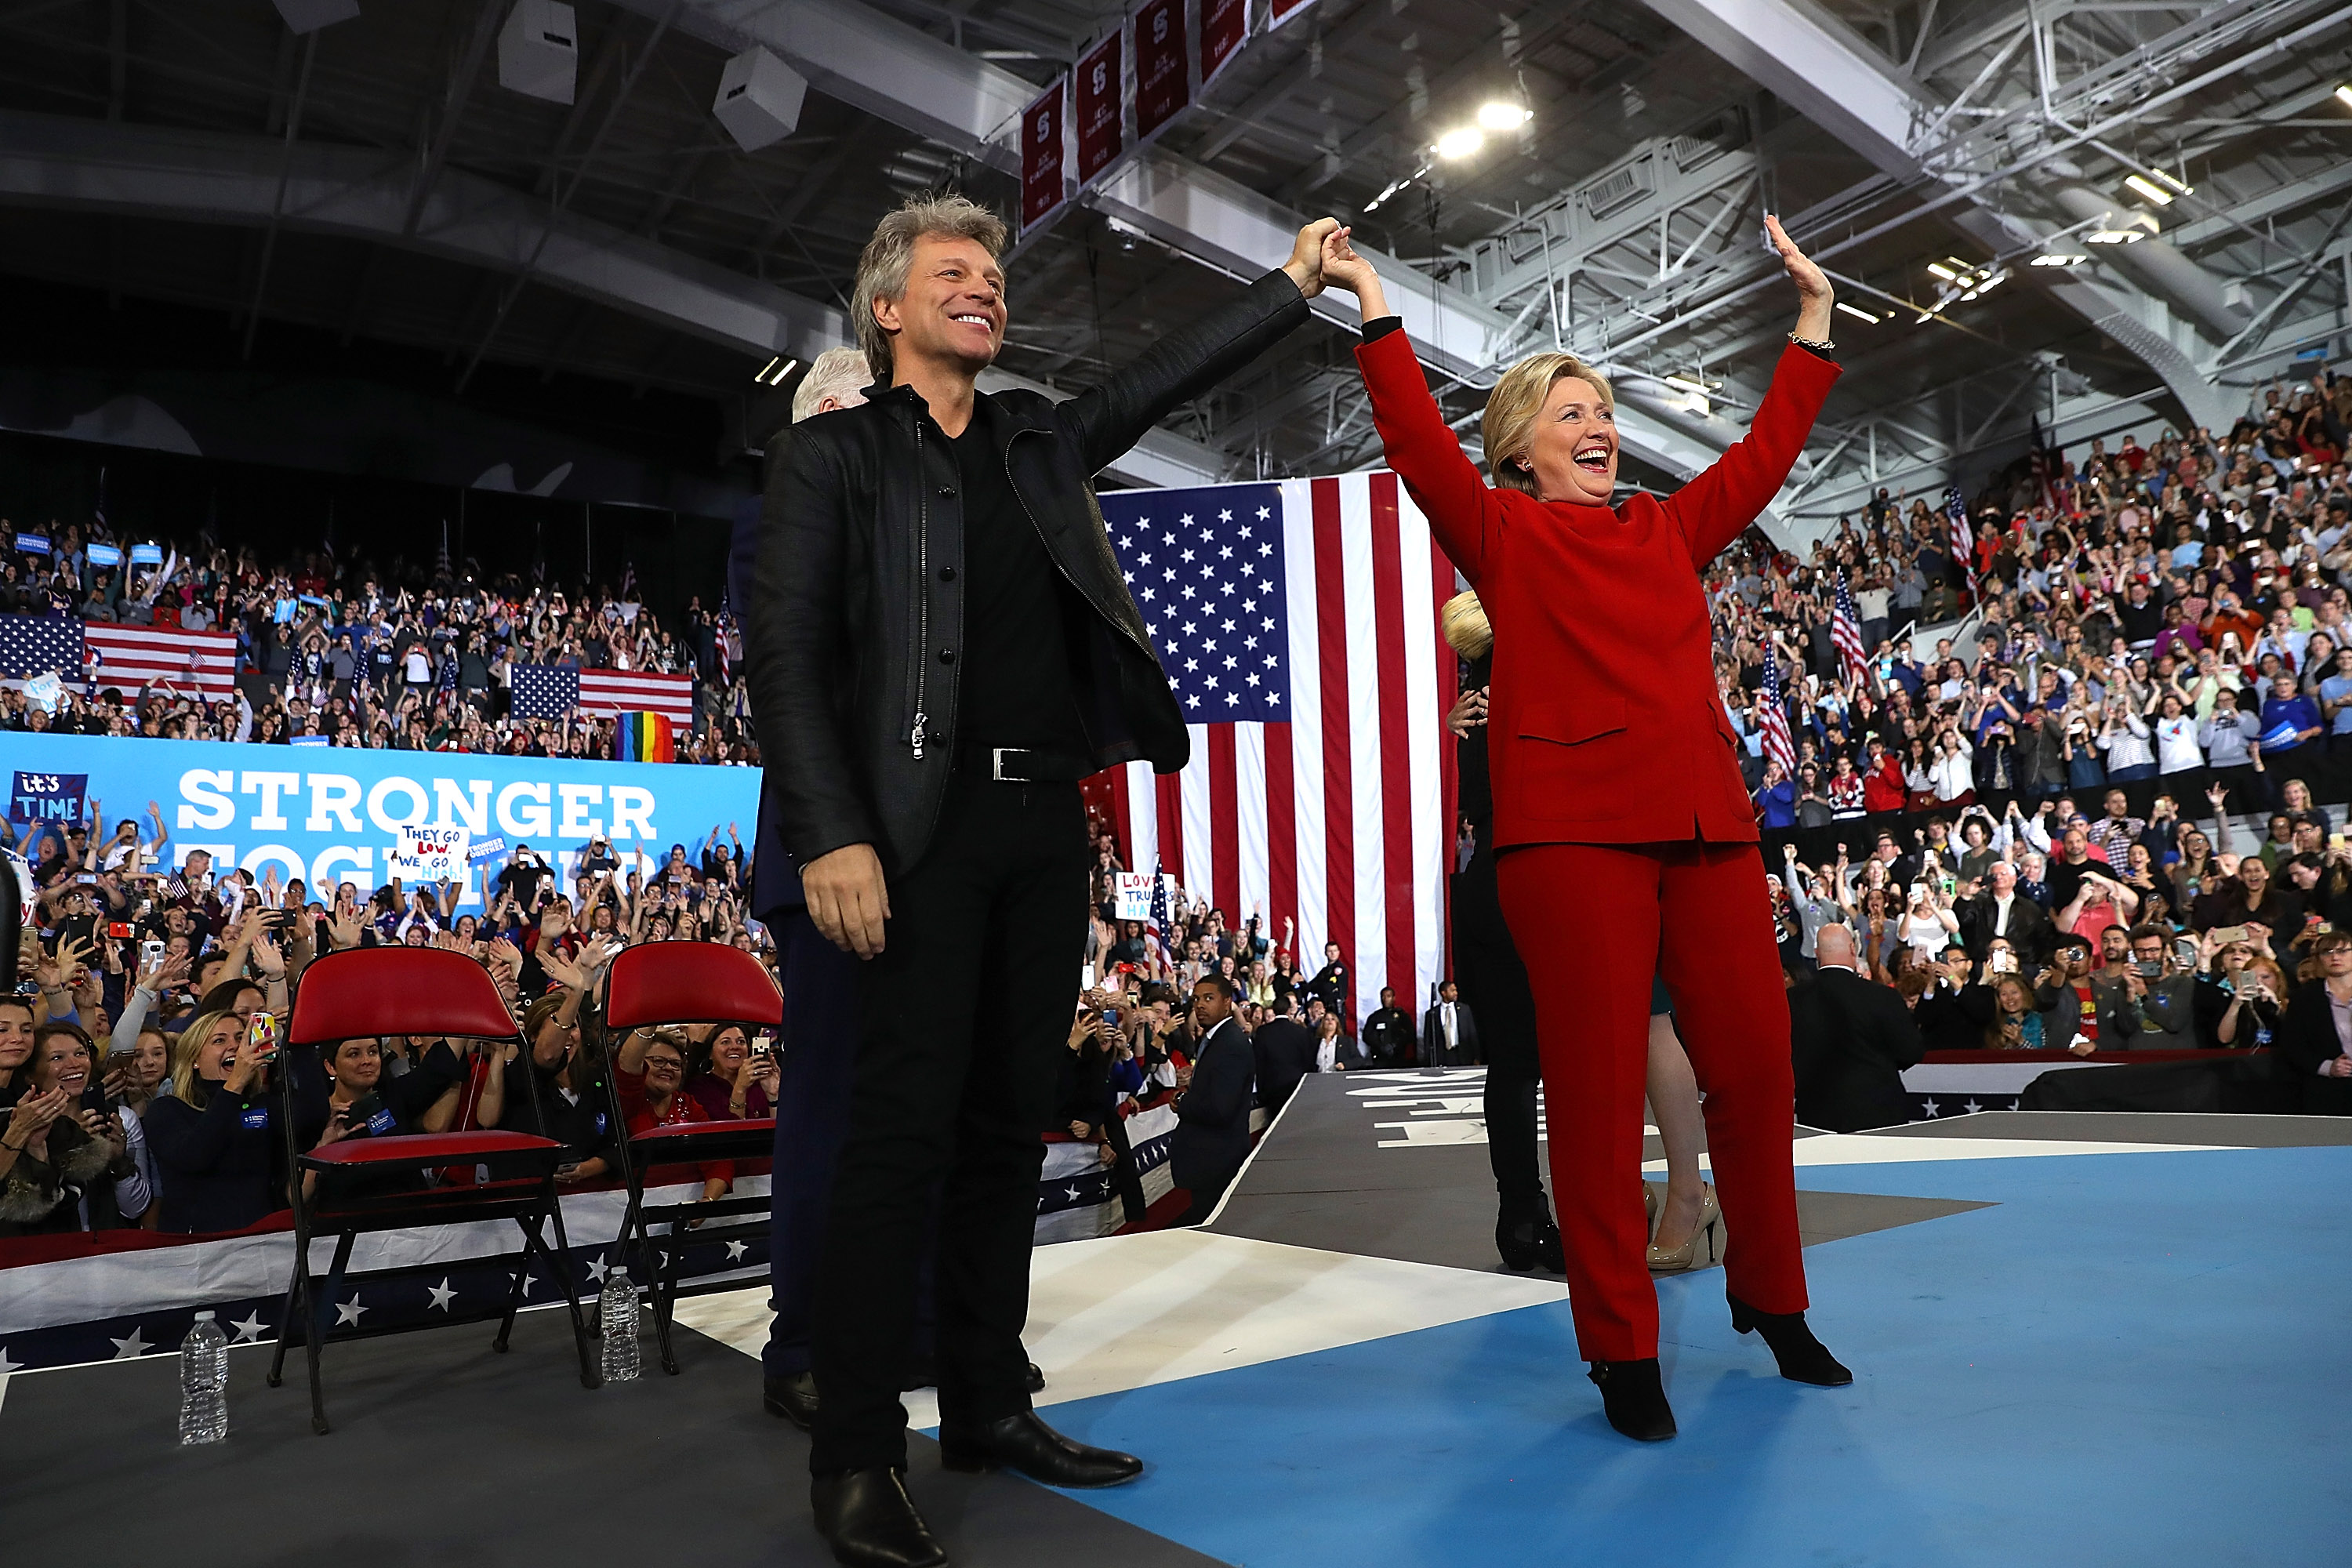 Democratic presidential nominee Hillary Clinton (R) with musician Jon Bon Jovi during a campaign rally on November 8, 2016.